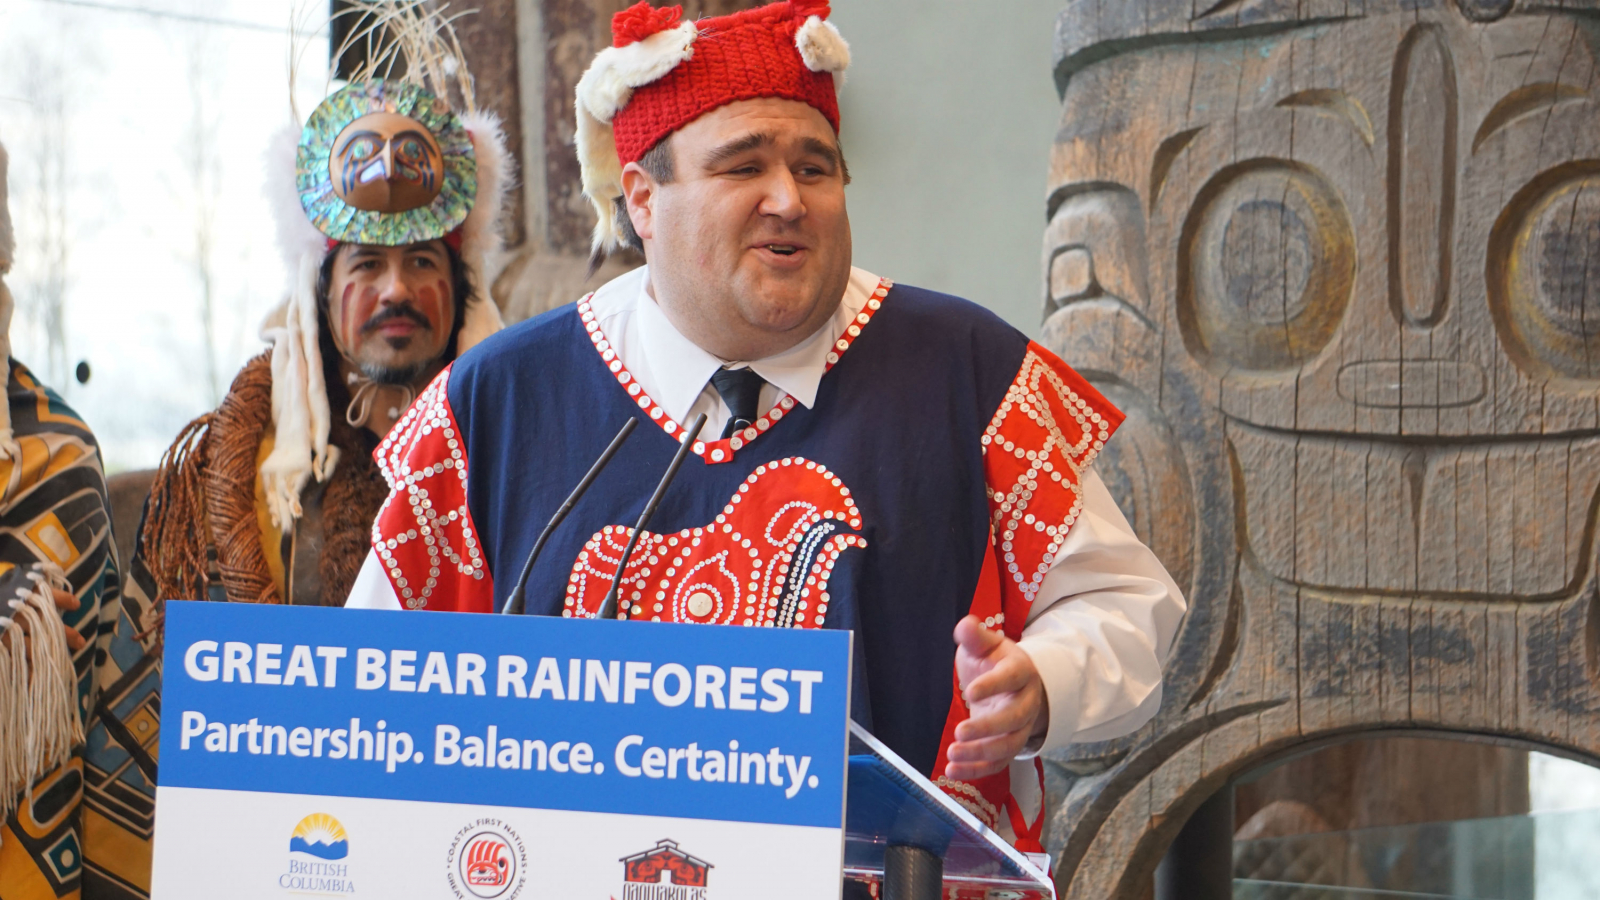 Dallas Smith, Nanwakolas Council, Great Bear Rainforest, First Nations